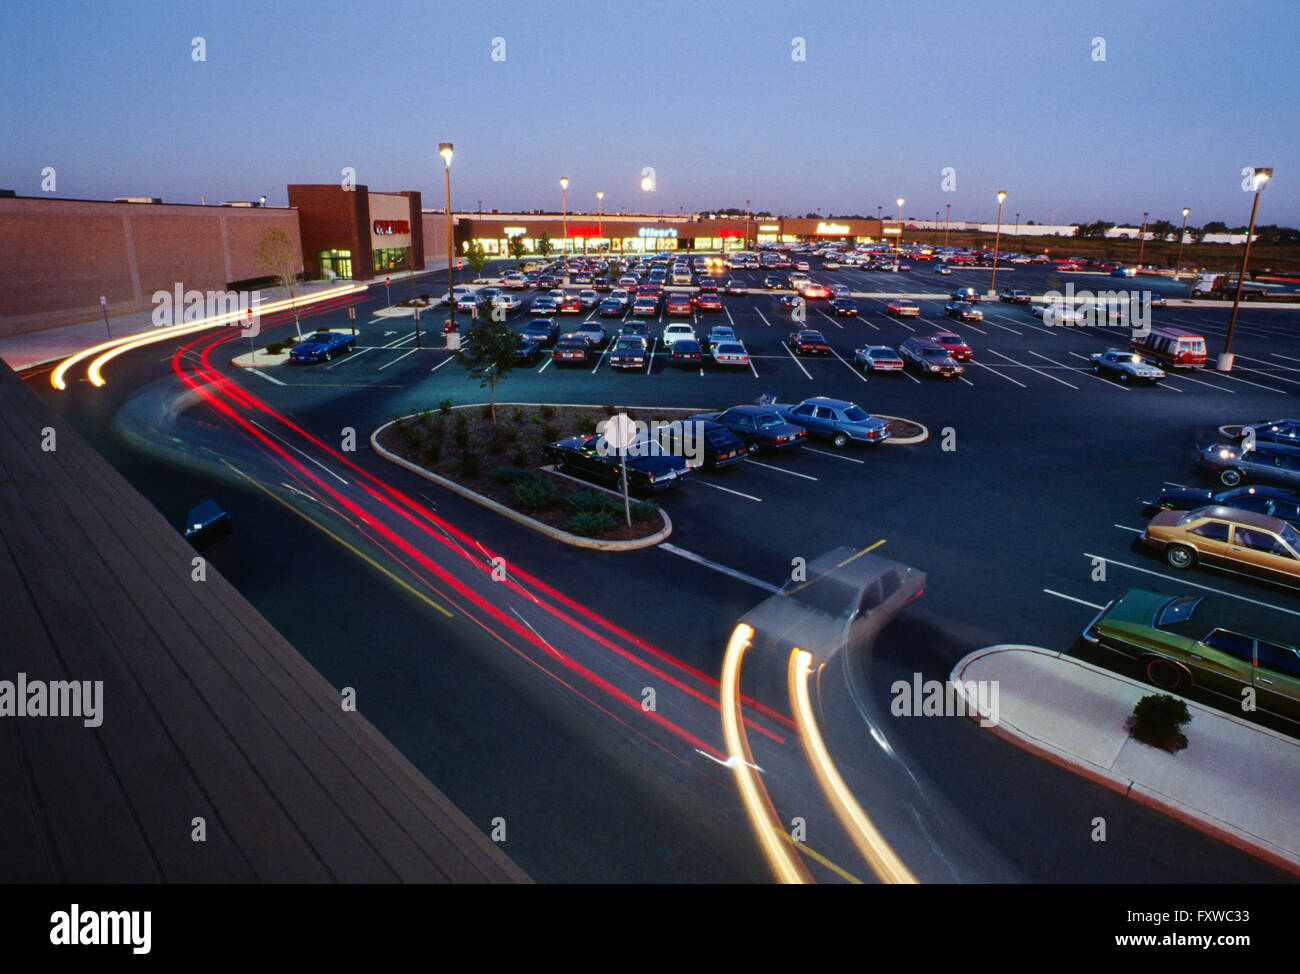 Aerial view of large strip shopping mall and parking lot at dusk; central New Jersey; USA - Stock Image